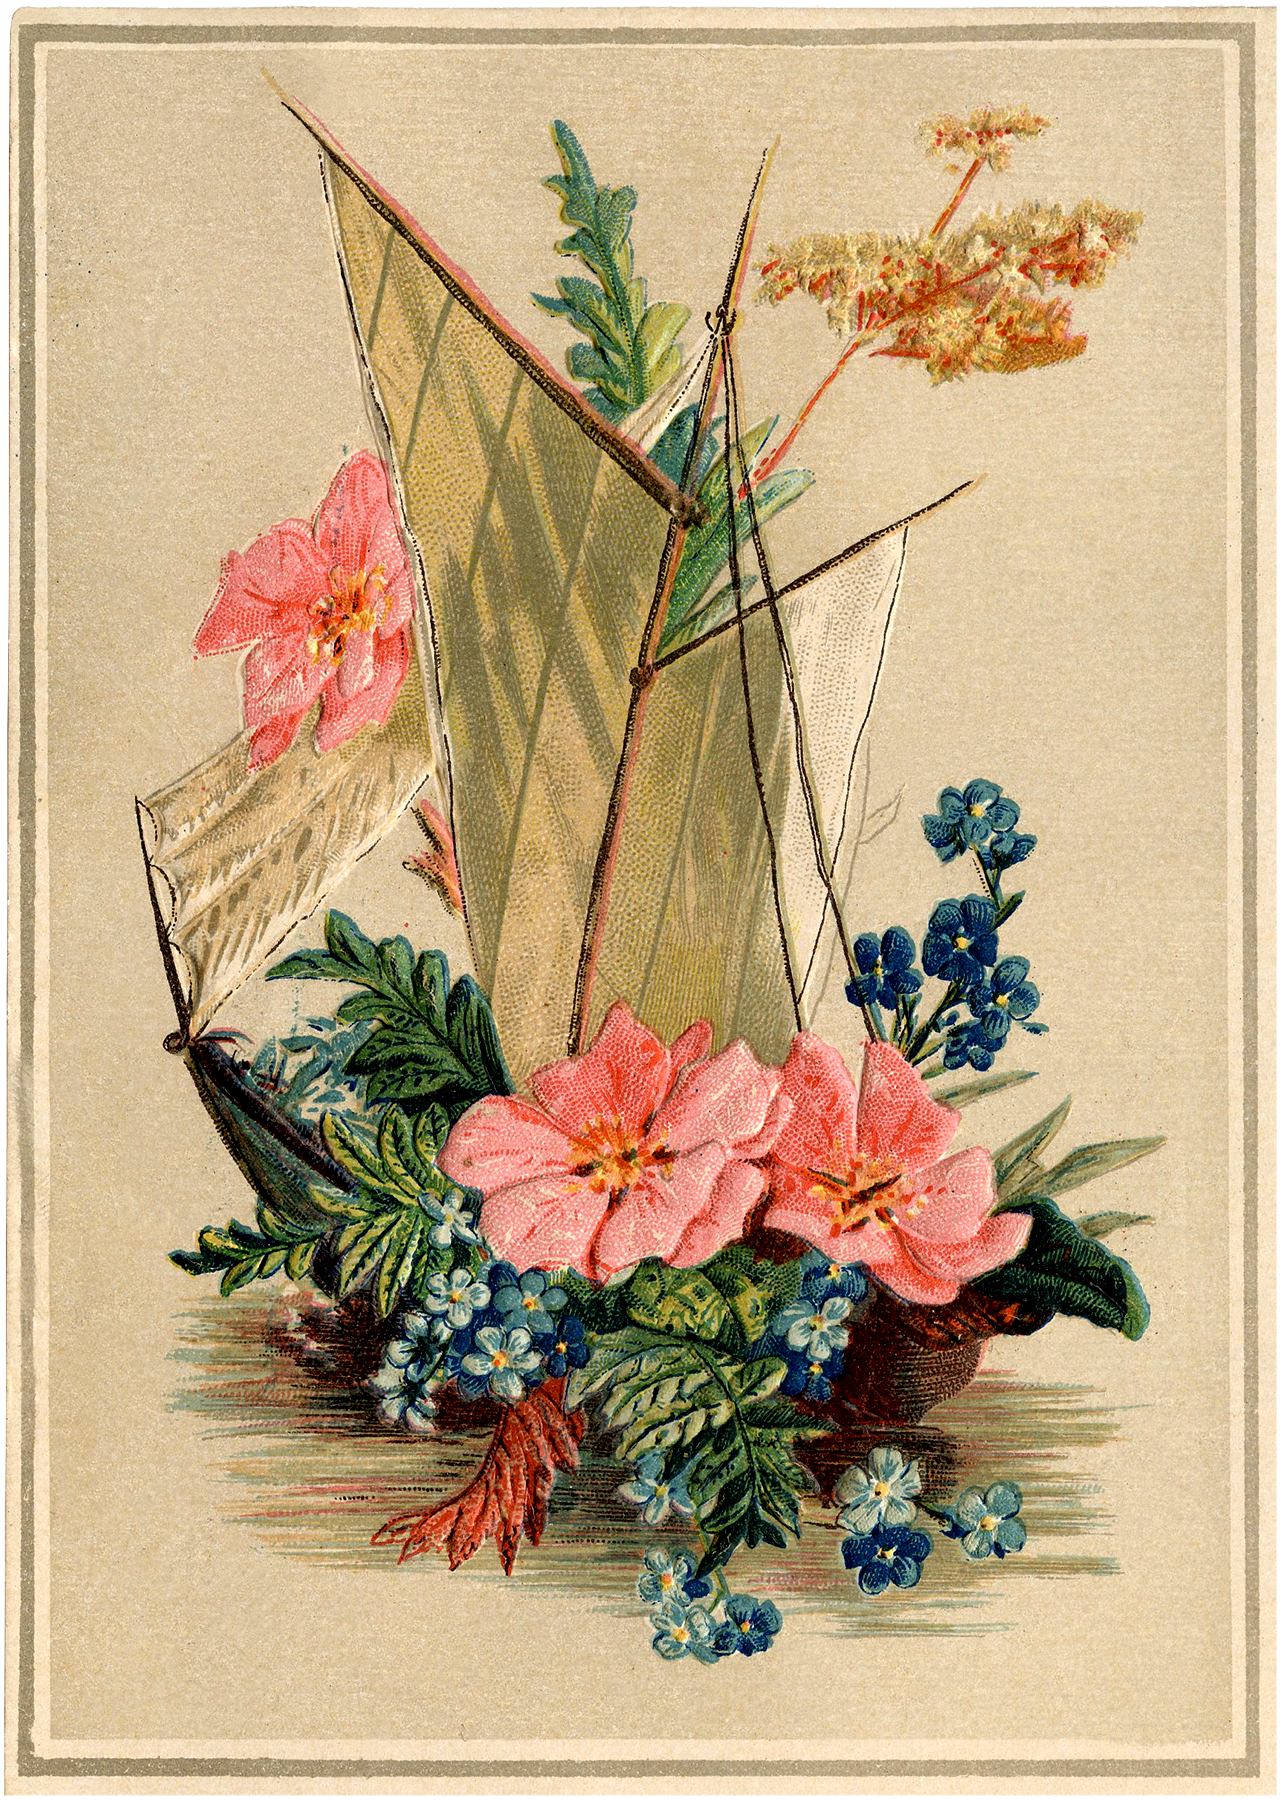 Vintage Sailboat With Flowers Image Pretty The